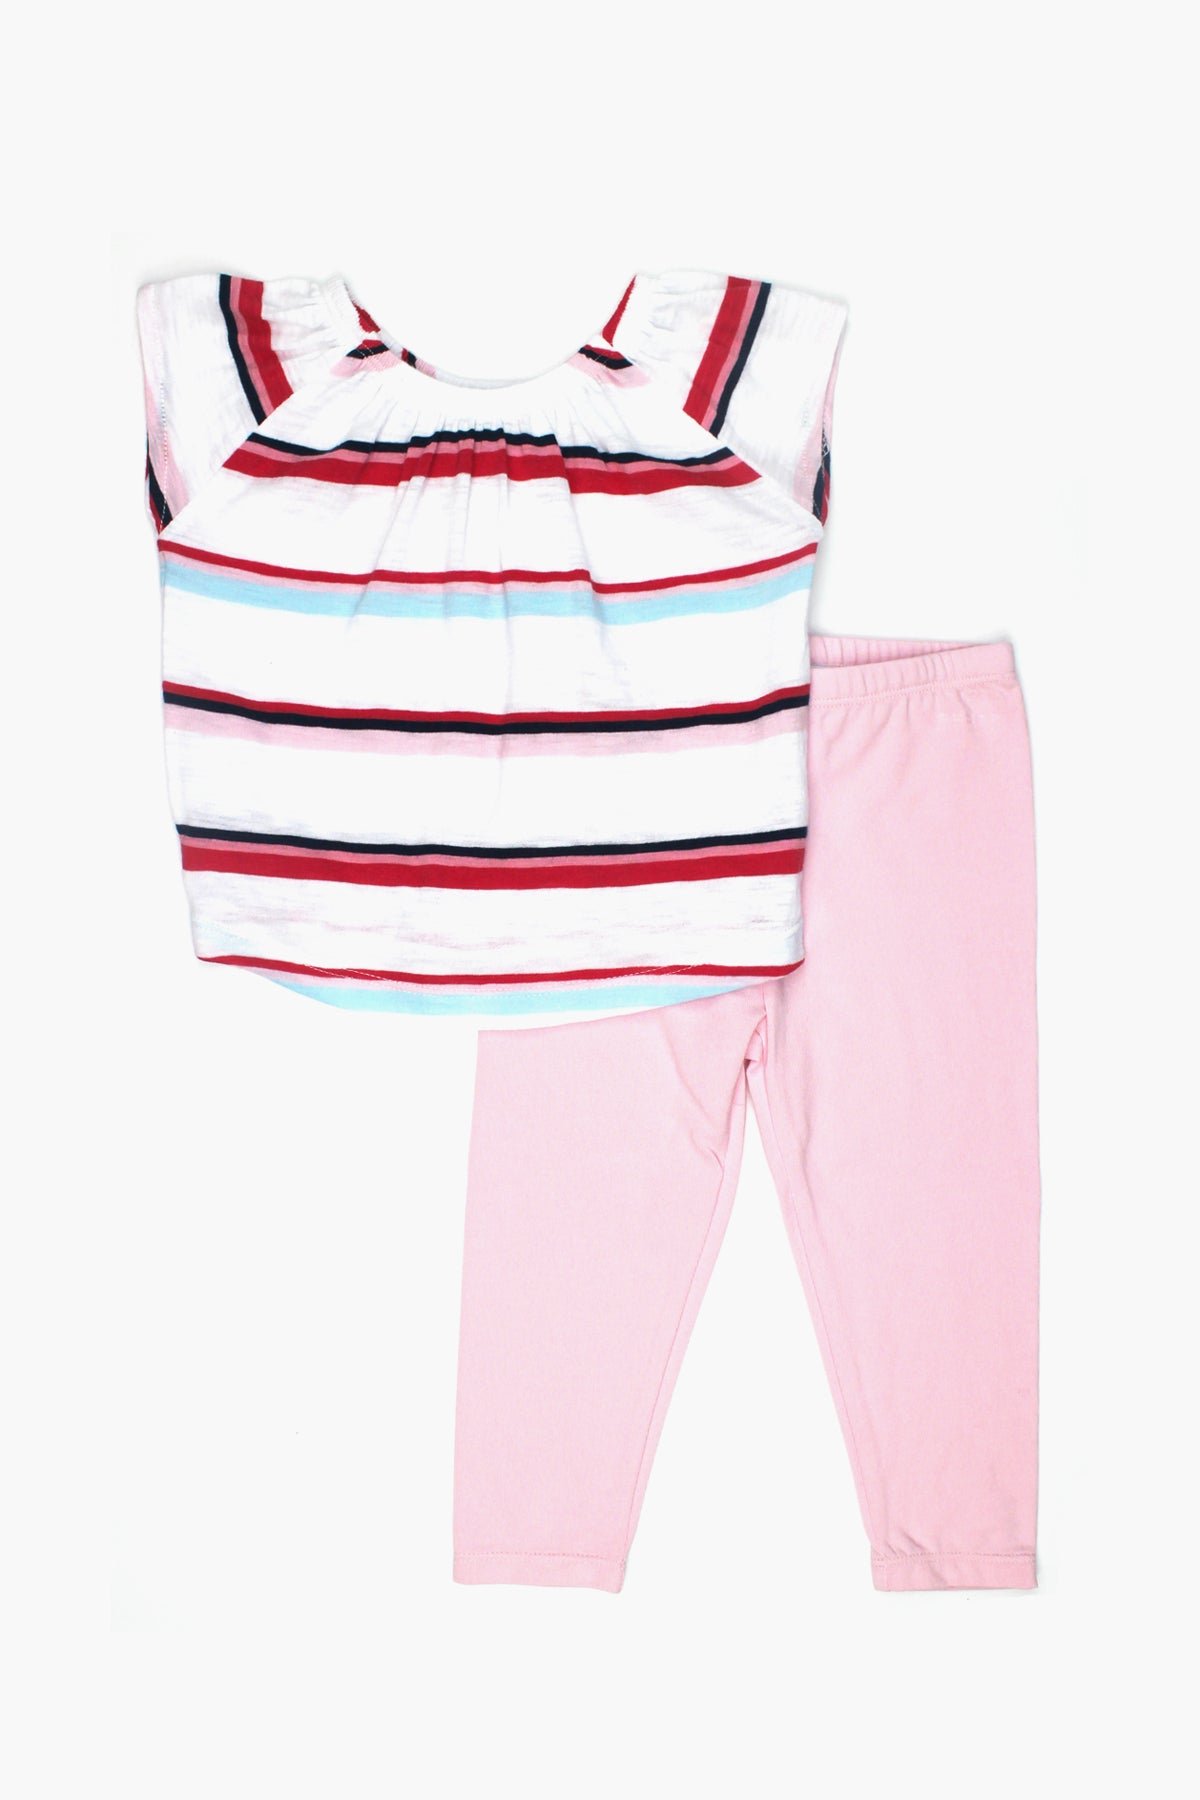 Splendid Multi Stripe Girls 2-Piece Set